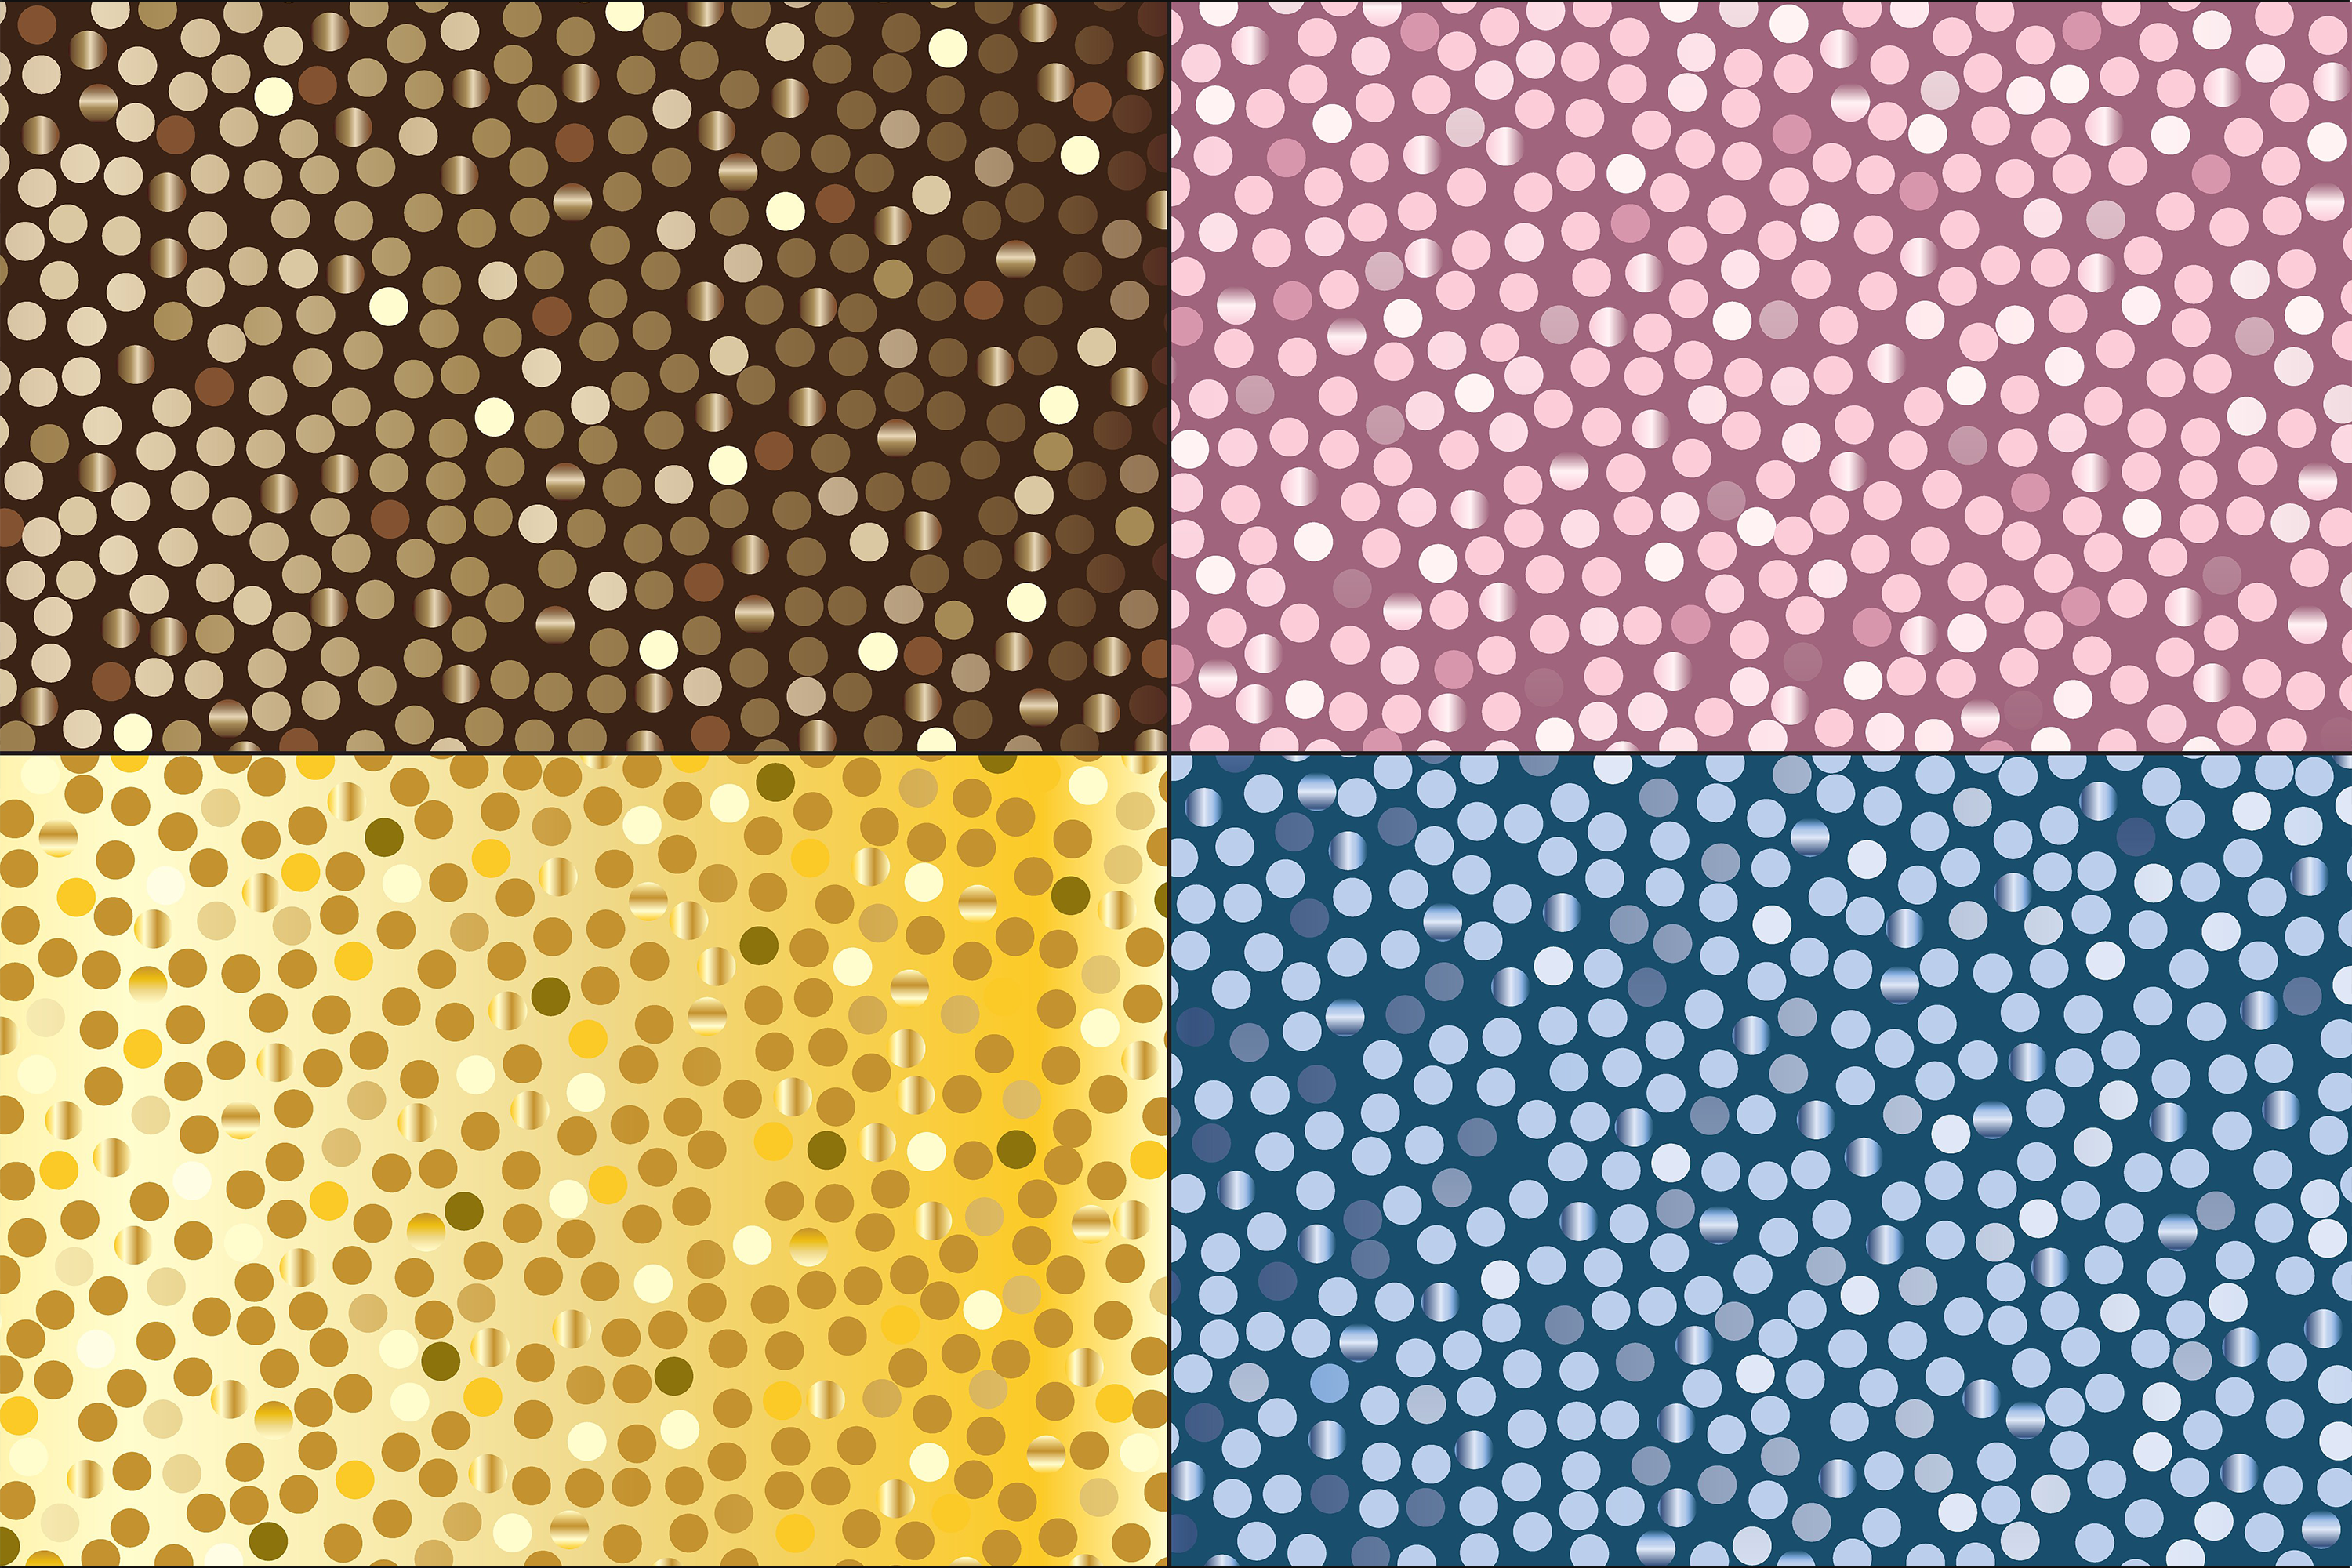 Mosaic Textures example image 5